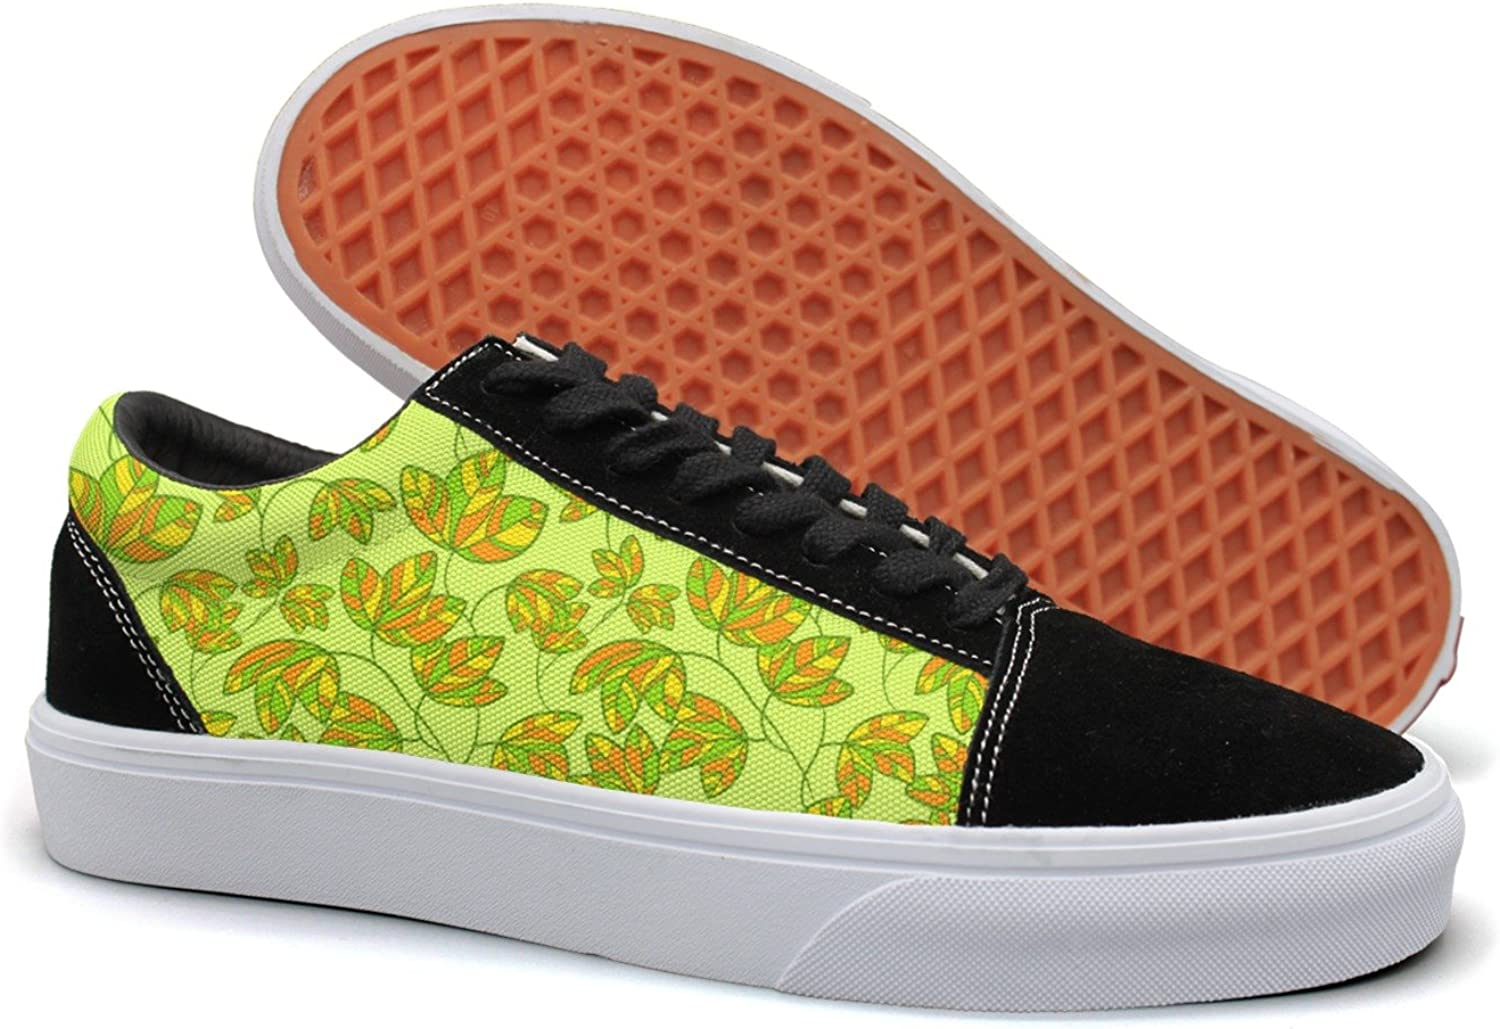 Green Plant Climber Small Womens Light Suede Canvas Deck shoes Low Top Cloth shoes